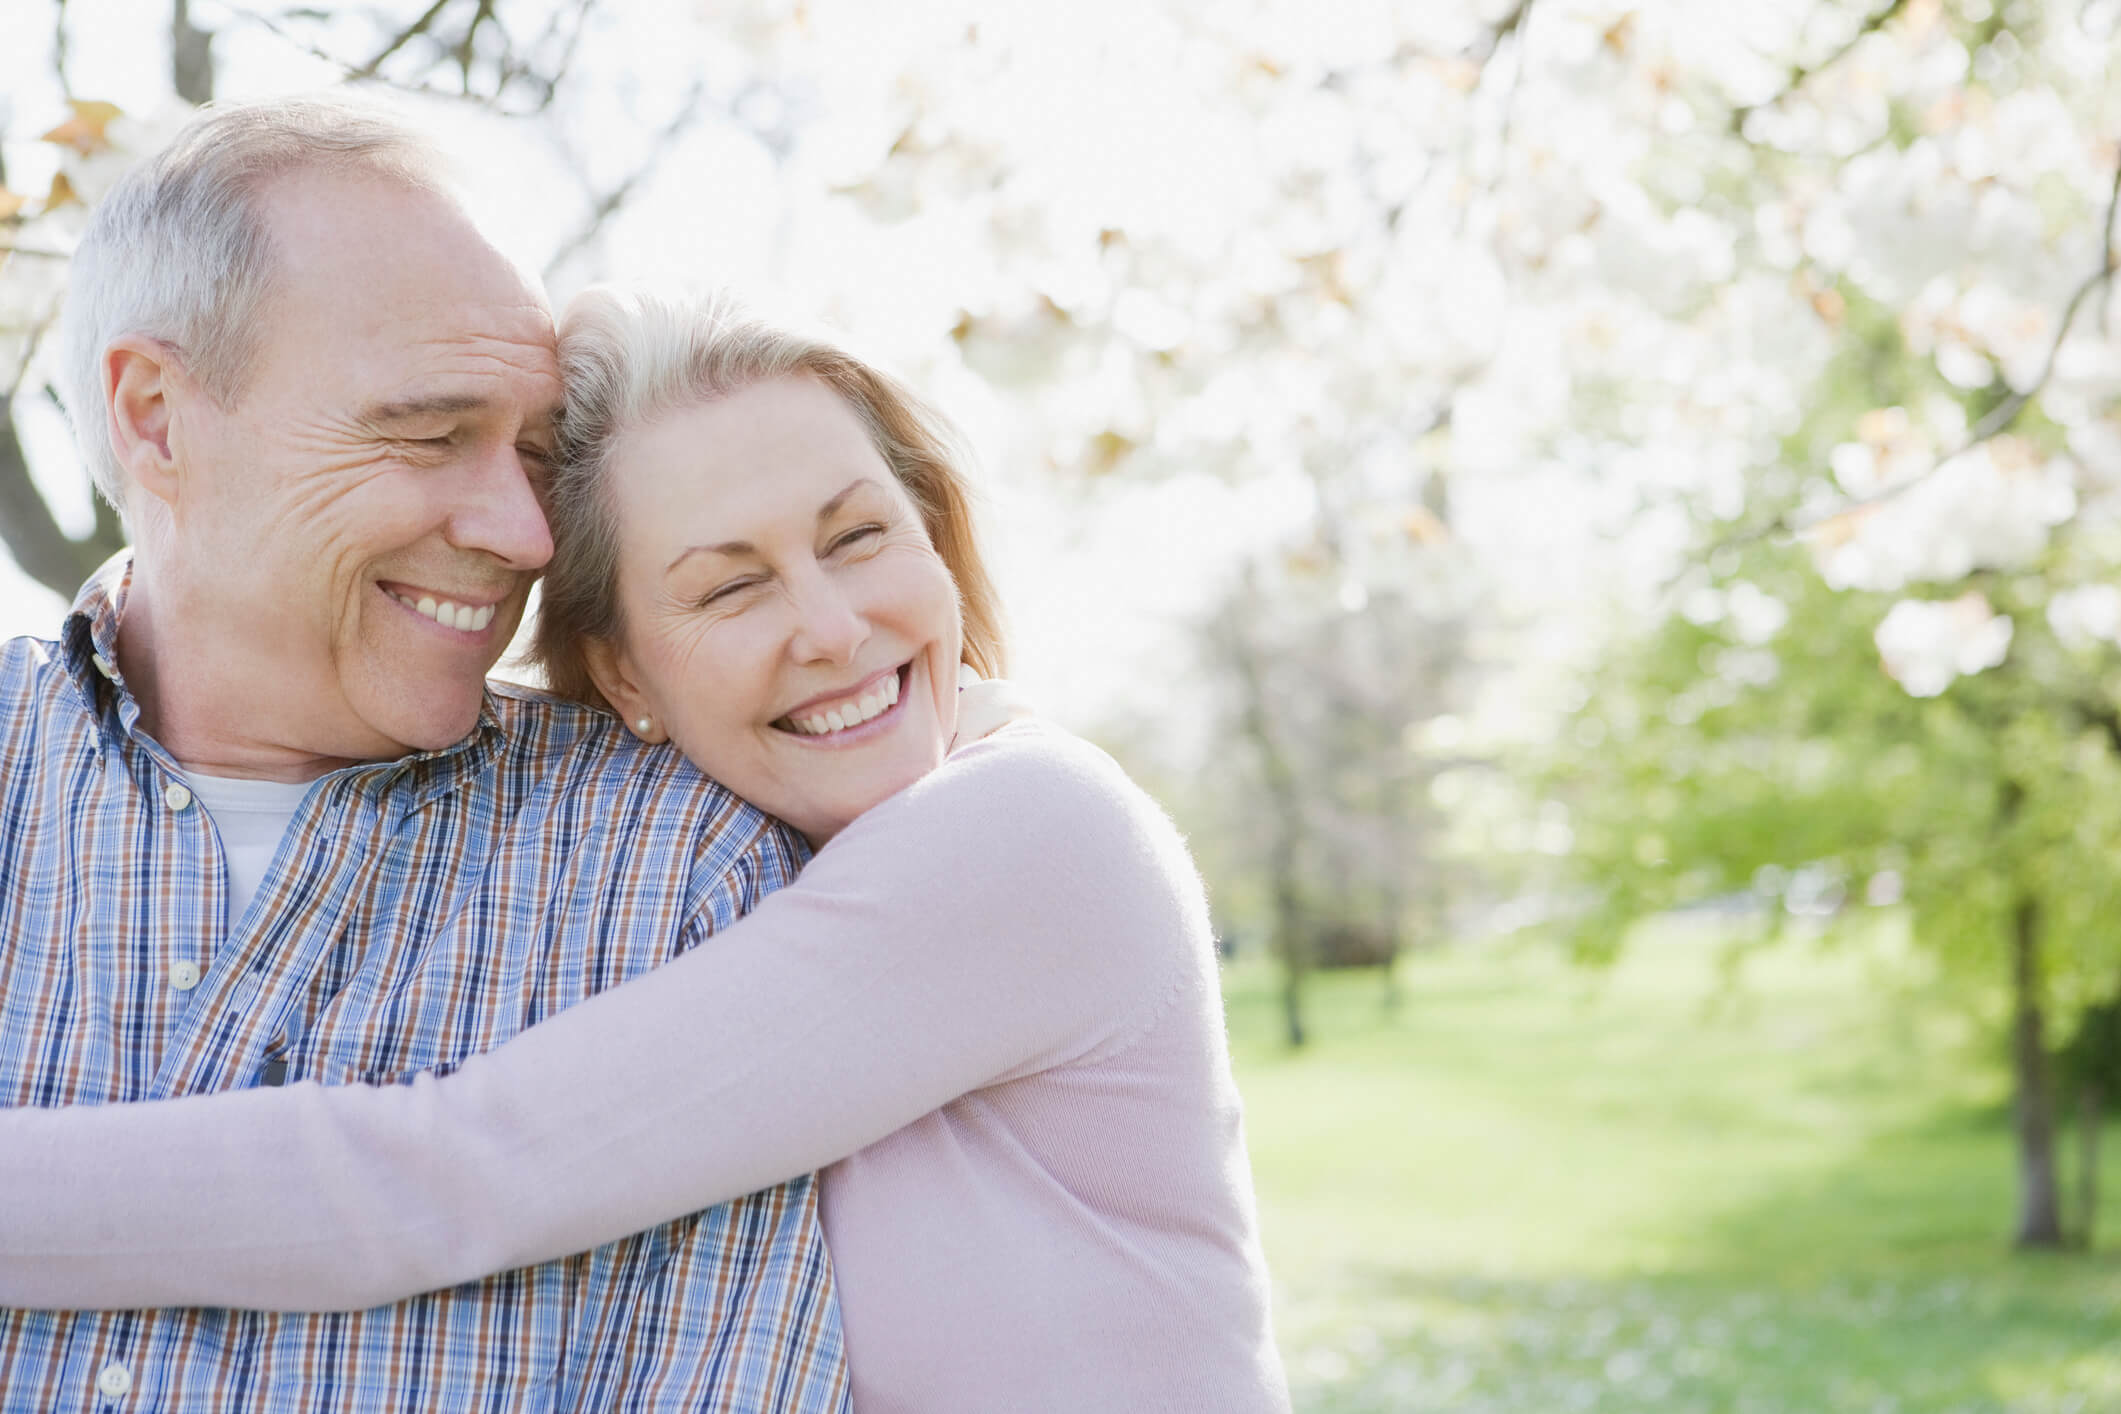 Image of next post - ASSISTED LIVING VS INDEPENDENT LIVING: WHAT'S THE DIFFERENCE?